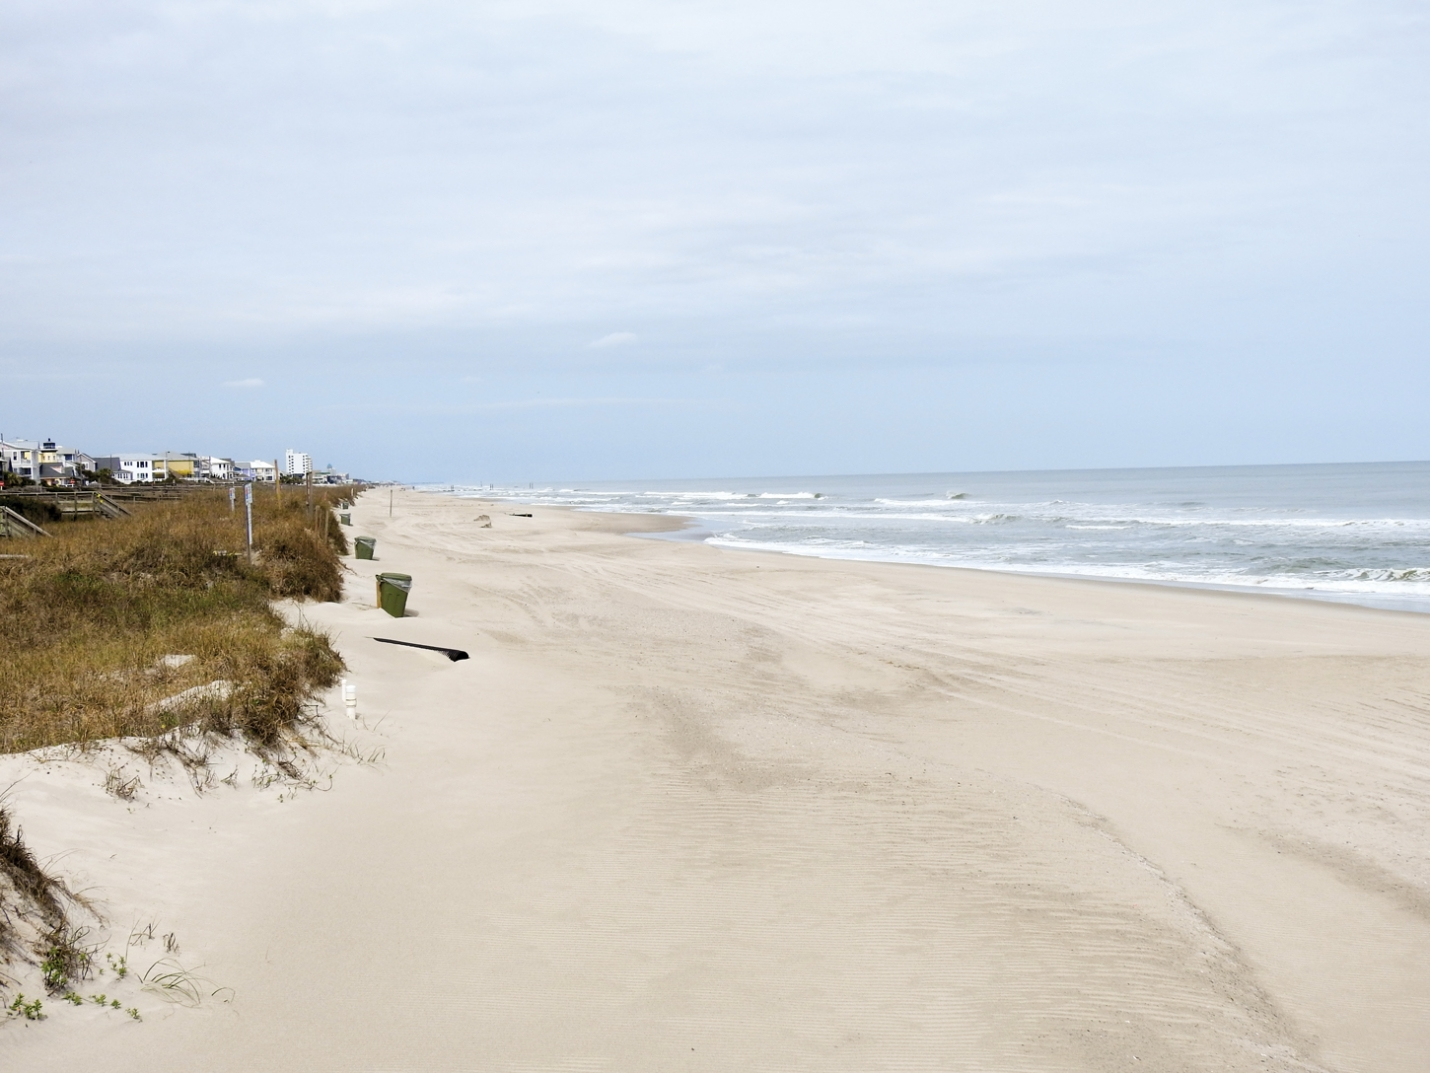 The Carolina Beach Town Council held a meeting on April 14th. One topic was the issue of reopening the beach strand in the face of increasing  public outcry about access to the beach to run, walk, swim and surf. The Council is communicating with other area beach Towns and the County about opening beaches in the coming weeks.